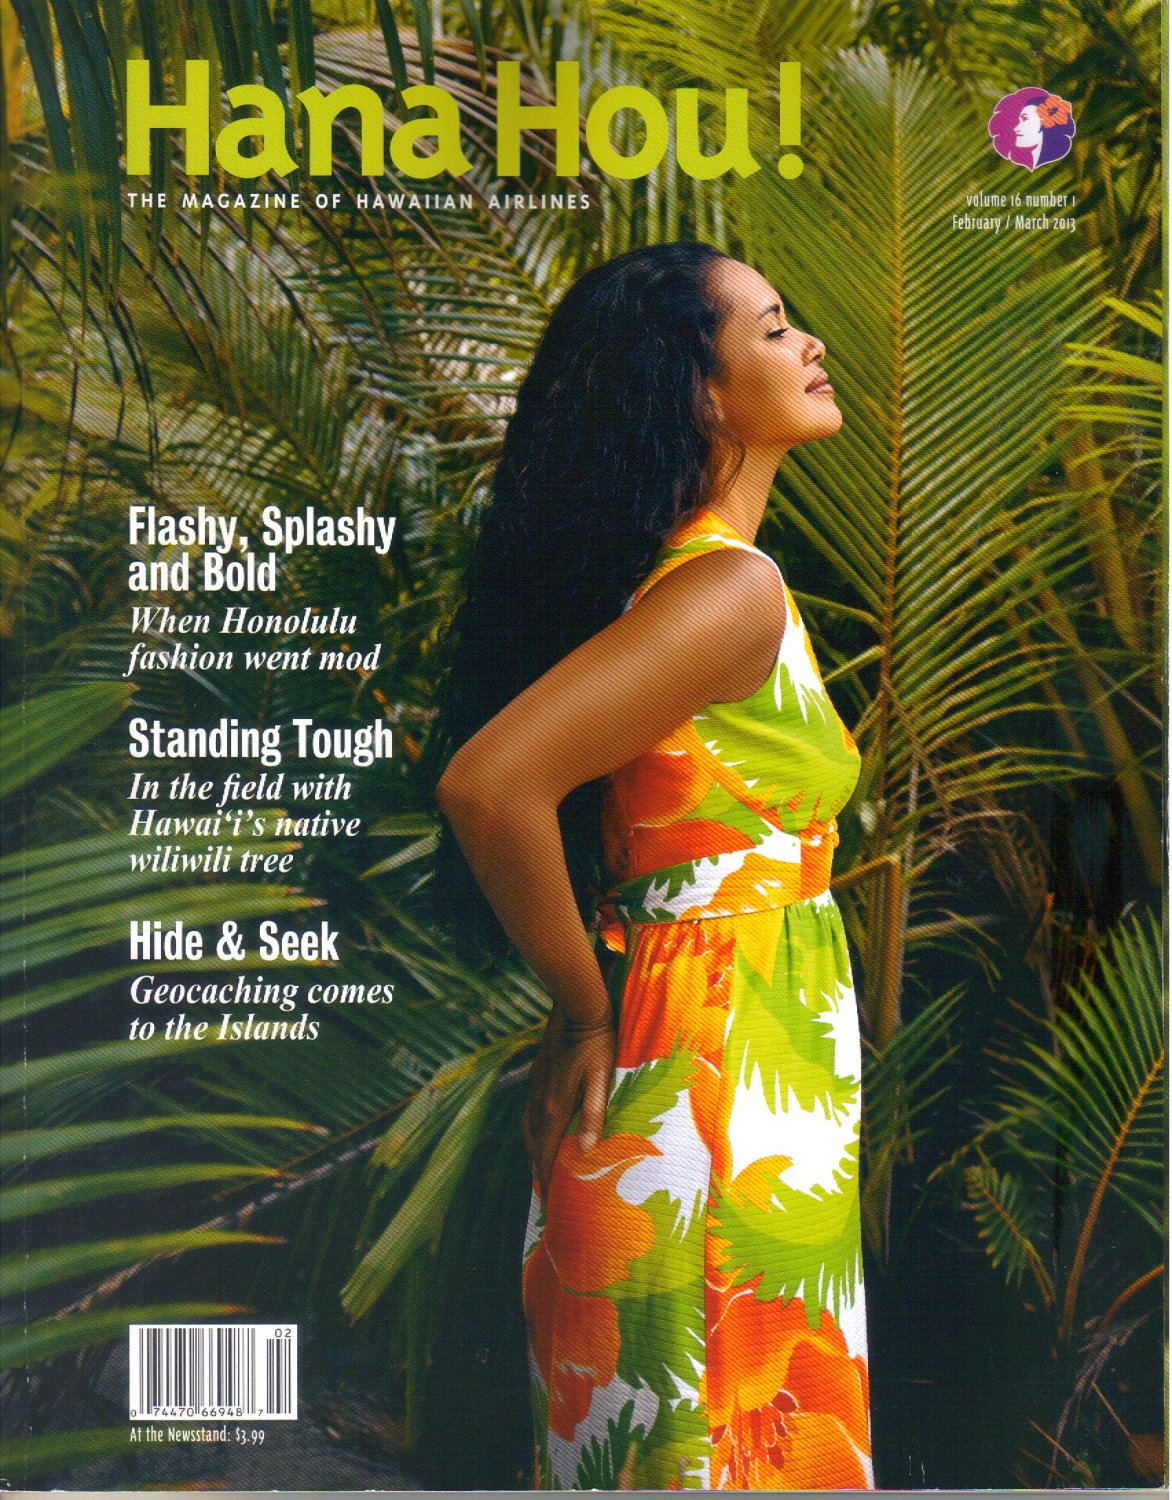 Hana Hou-Magazine of Hawaiian Airlines-February March 2013-Chika Tanaka-Canoes-Sonny Bradley